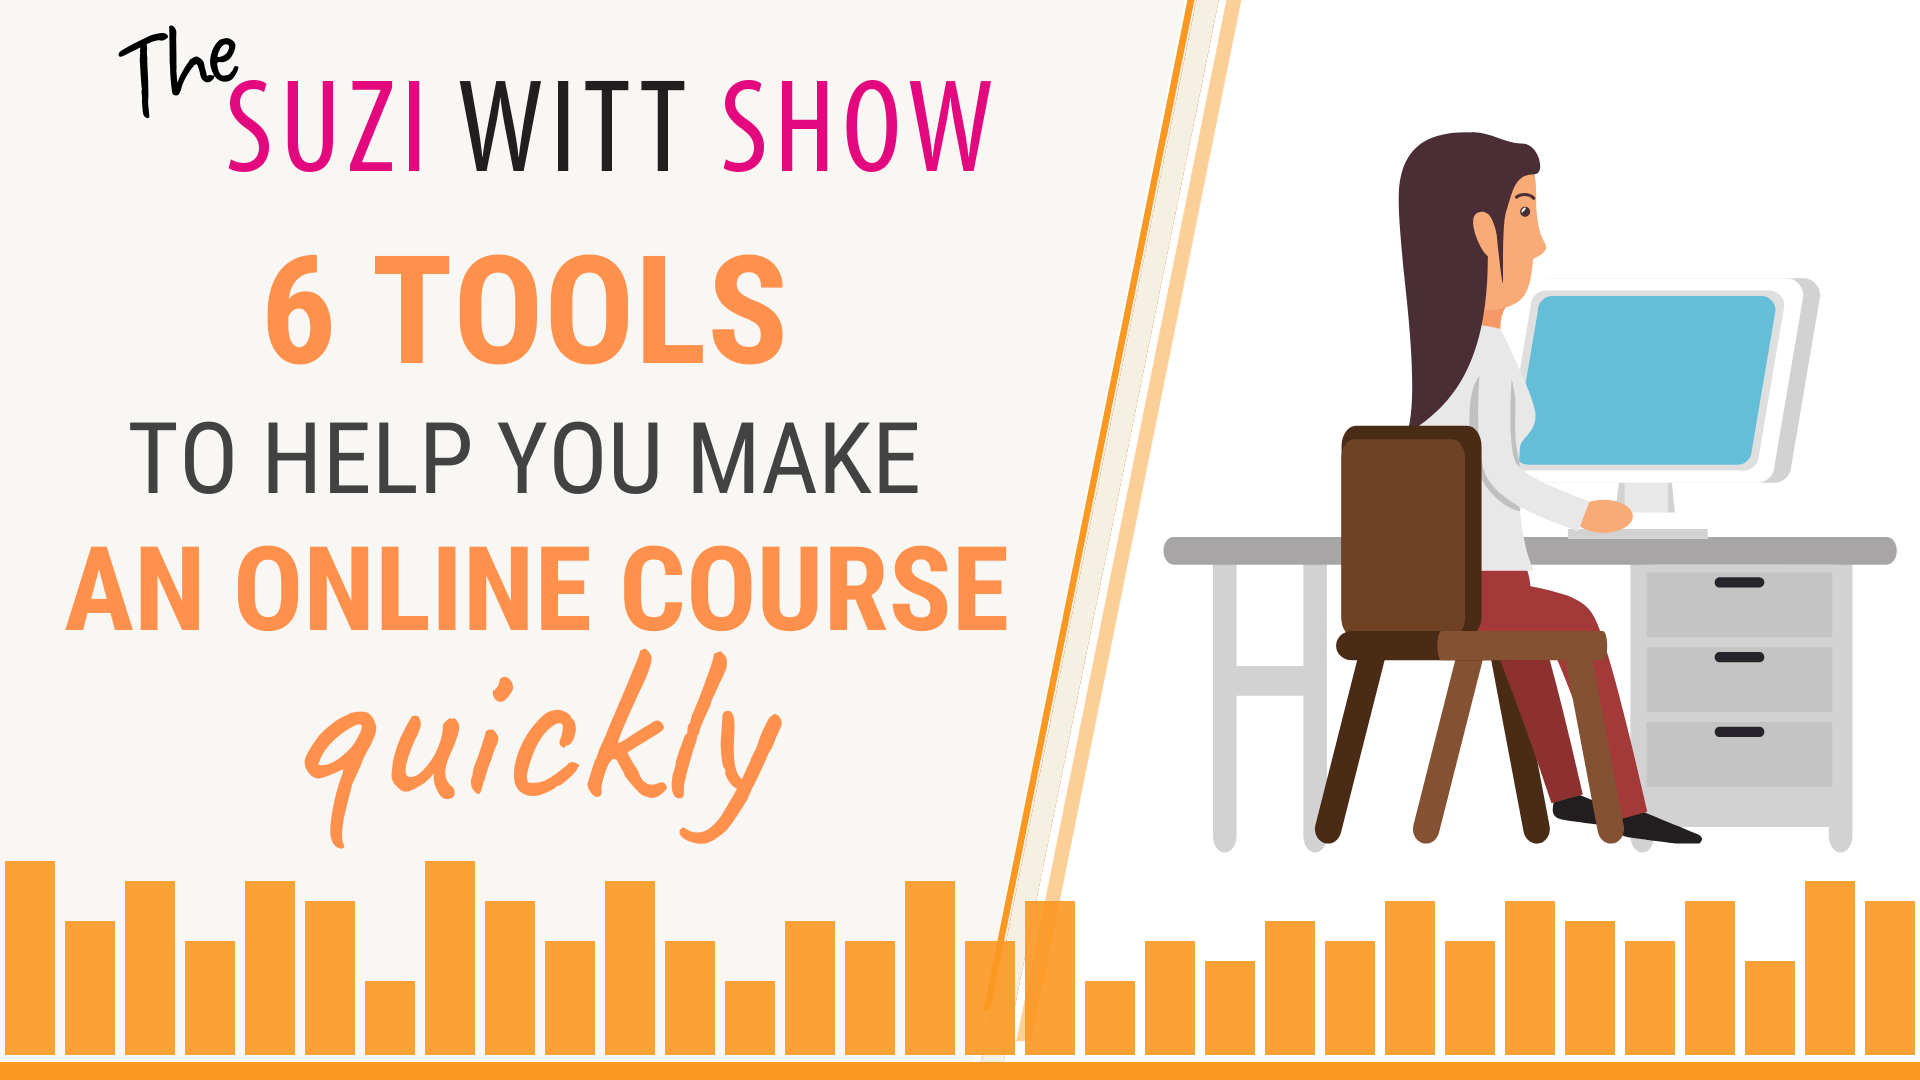 6 tools to create an online course quickly